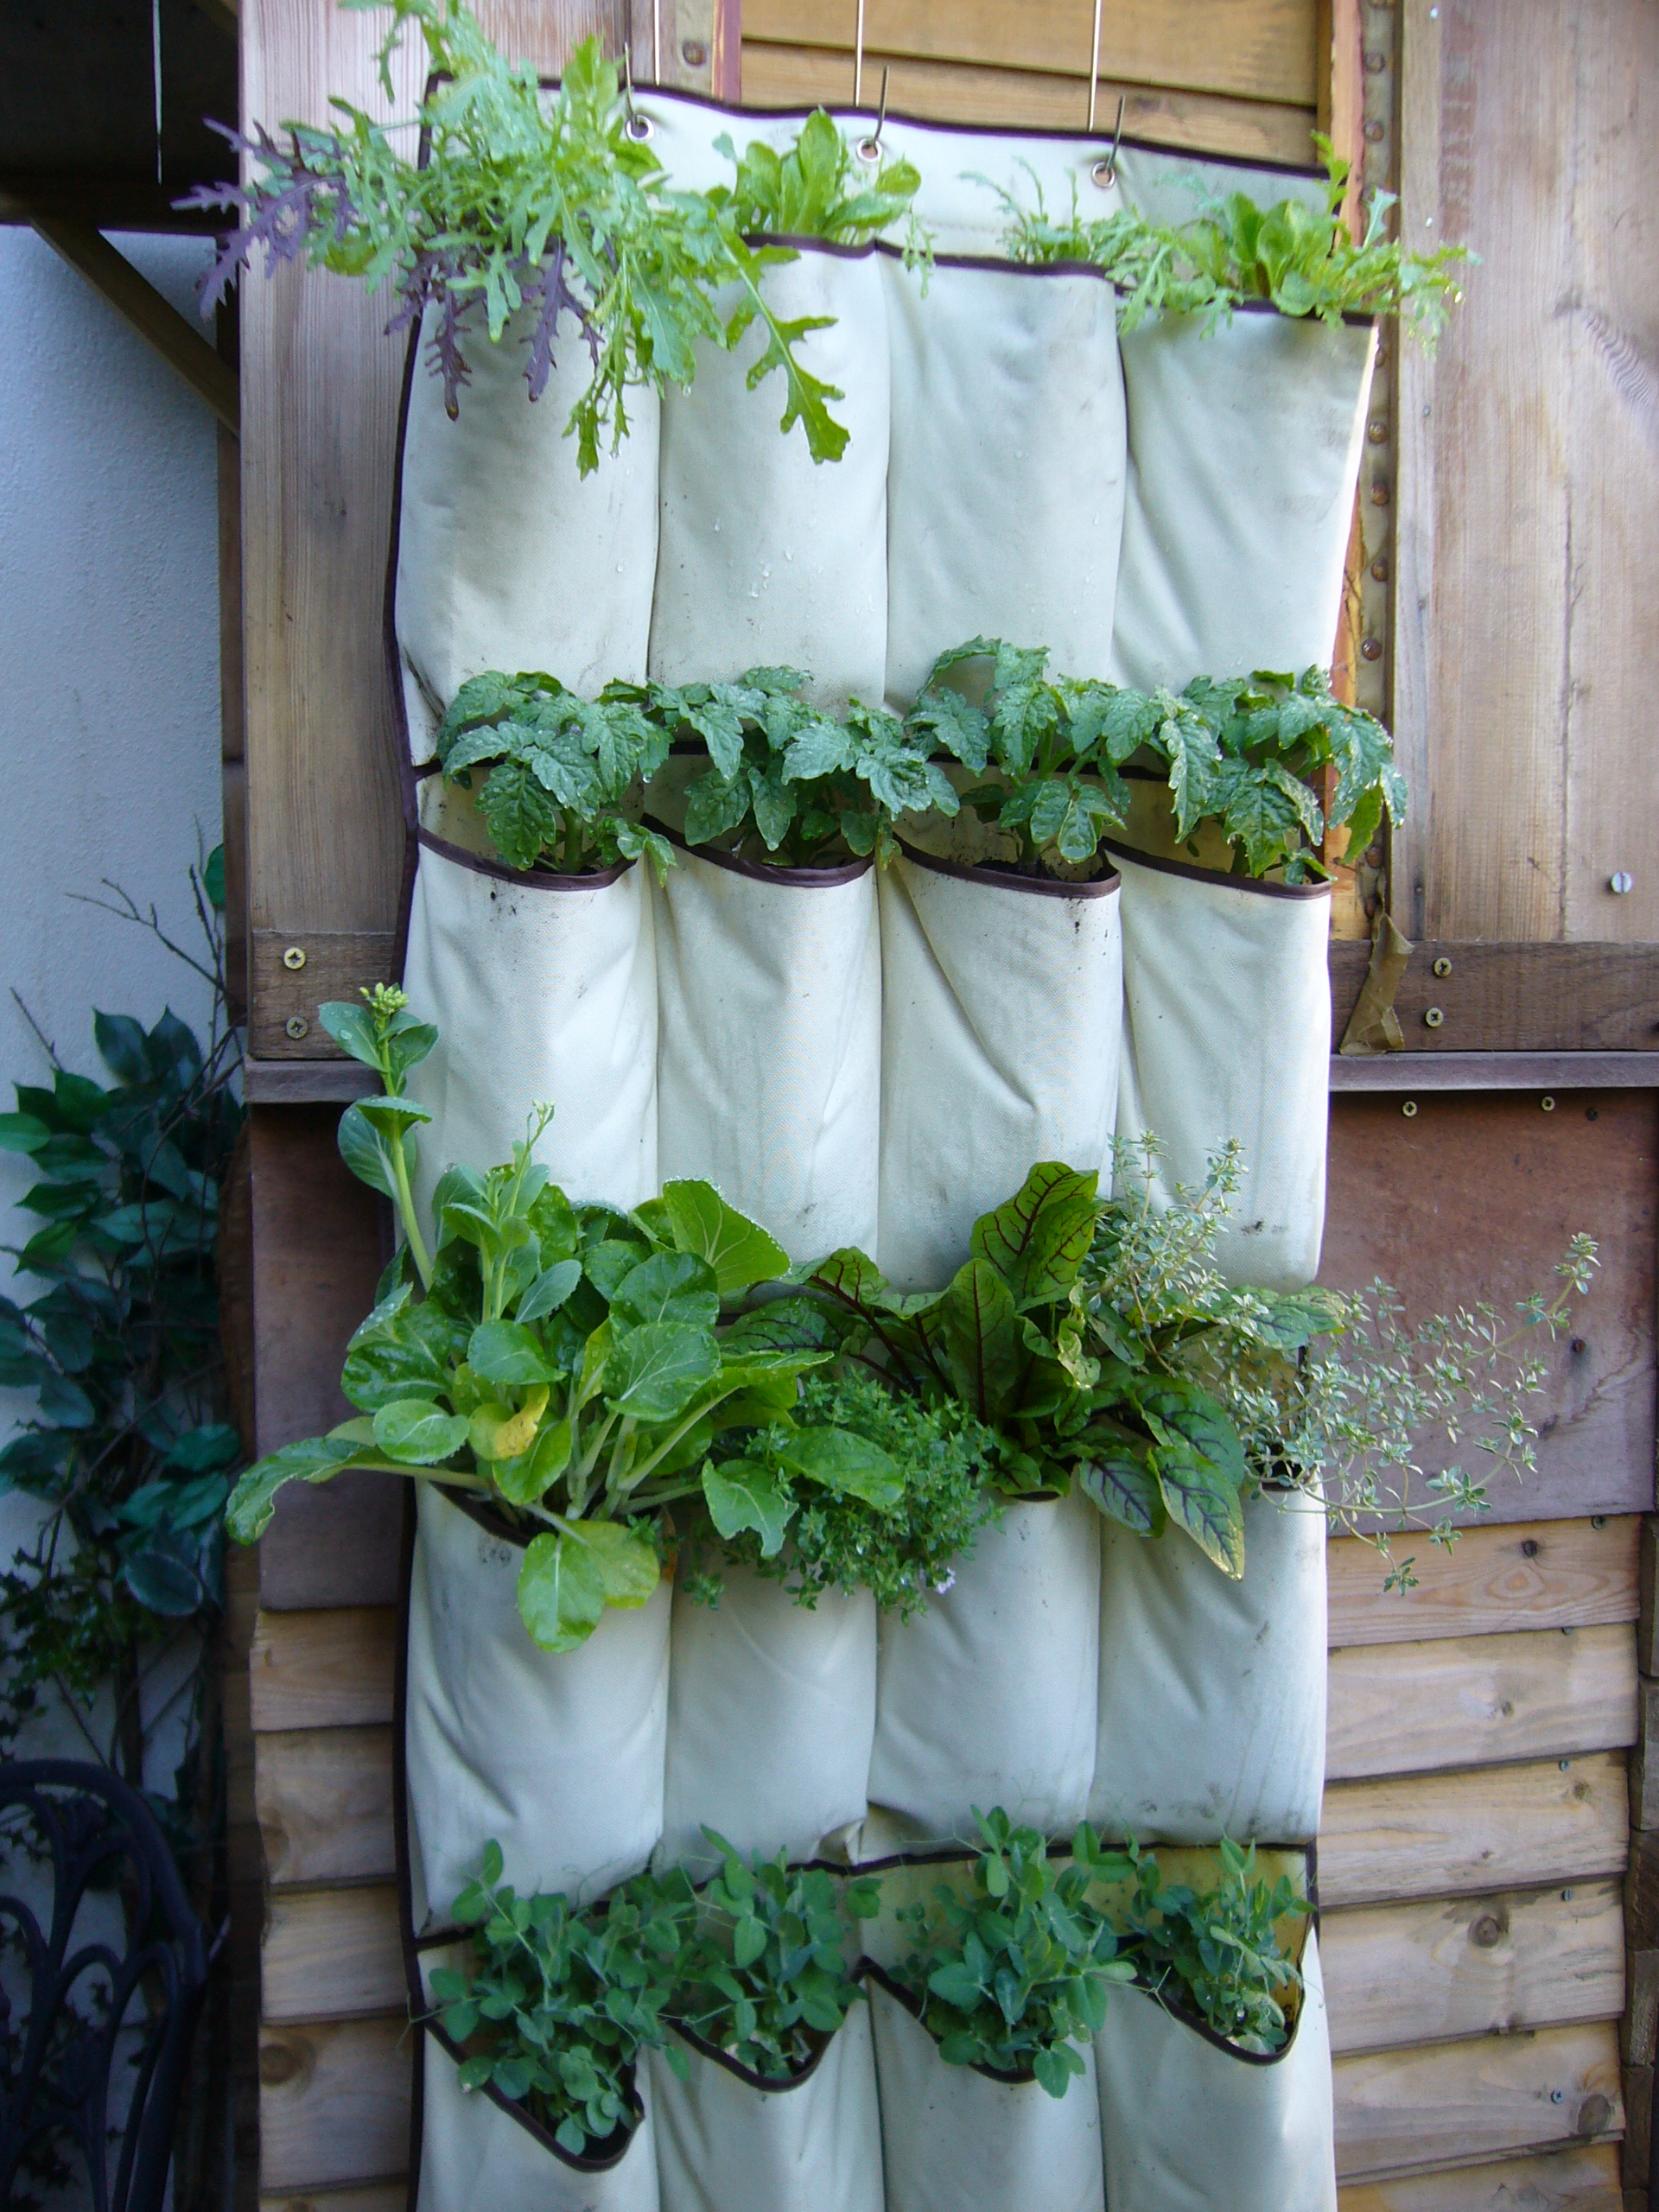 Hanging Herb Garden Kitchen Vertical Vegetables Grow Up In A Small Garden And Confound The